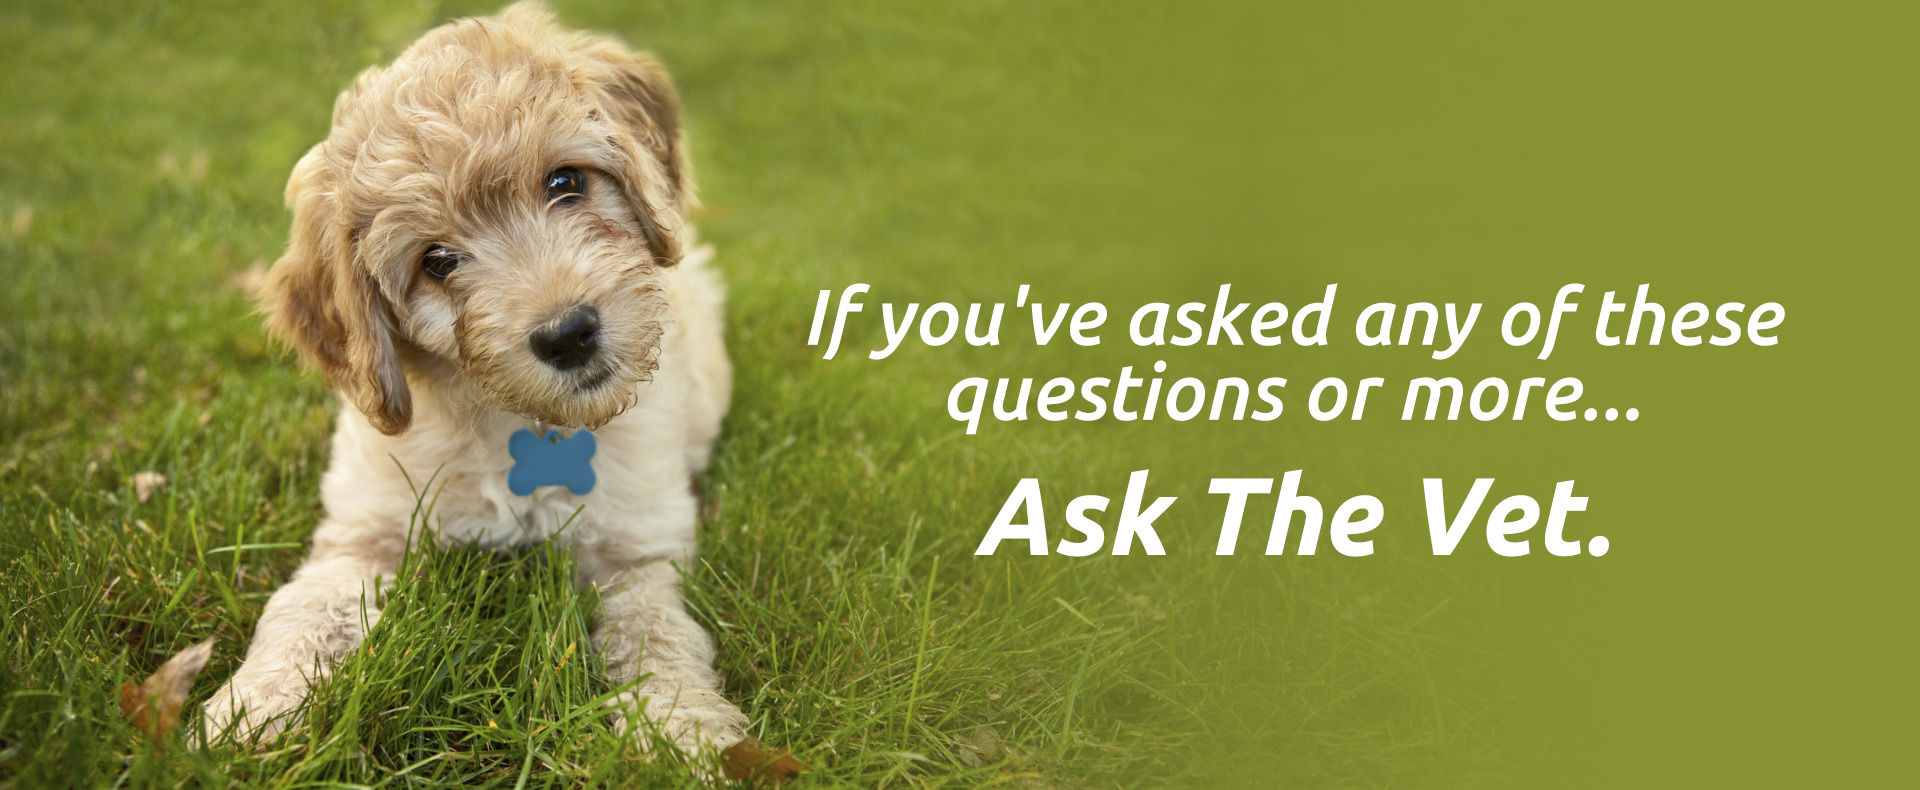 Home Veterinary Service for any type of consultation and vaccinations call at +1 866-880-7443